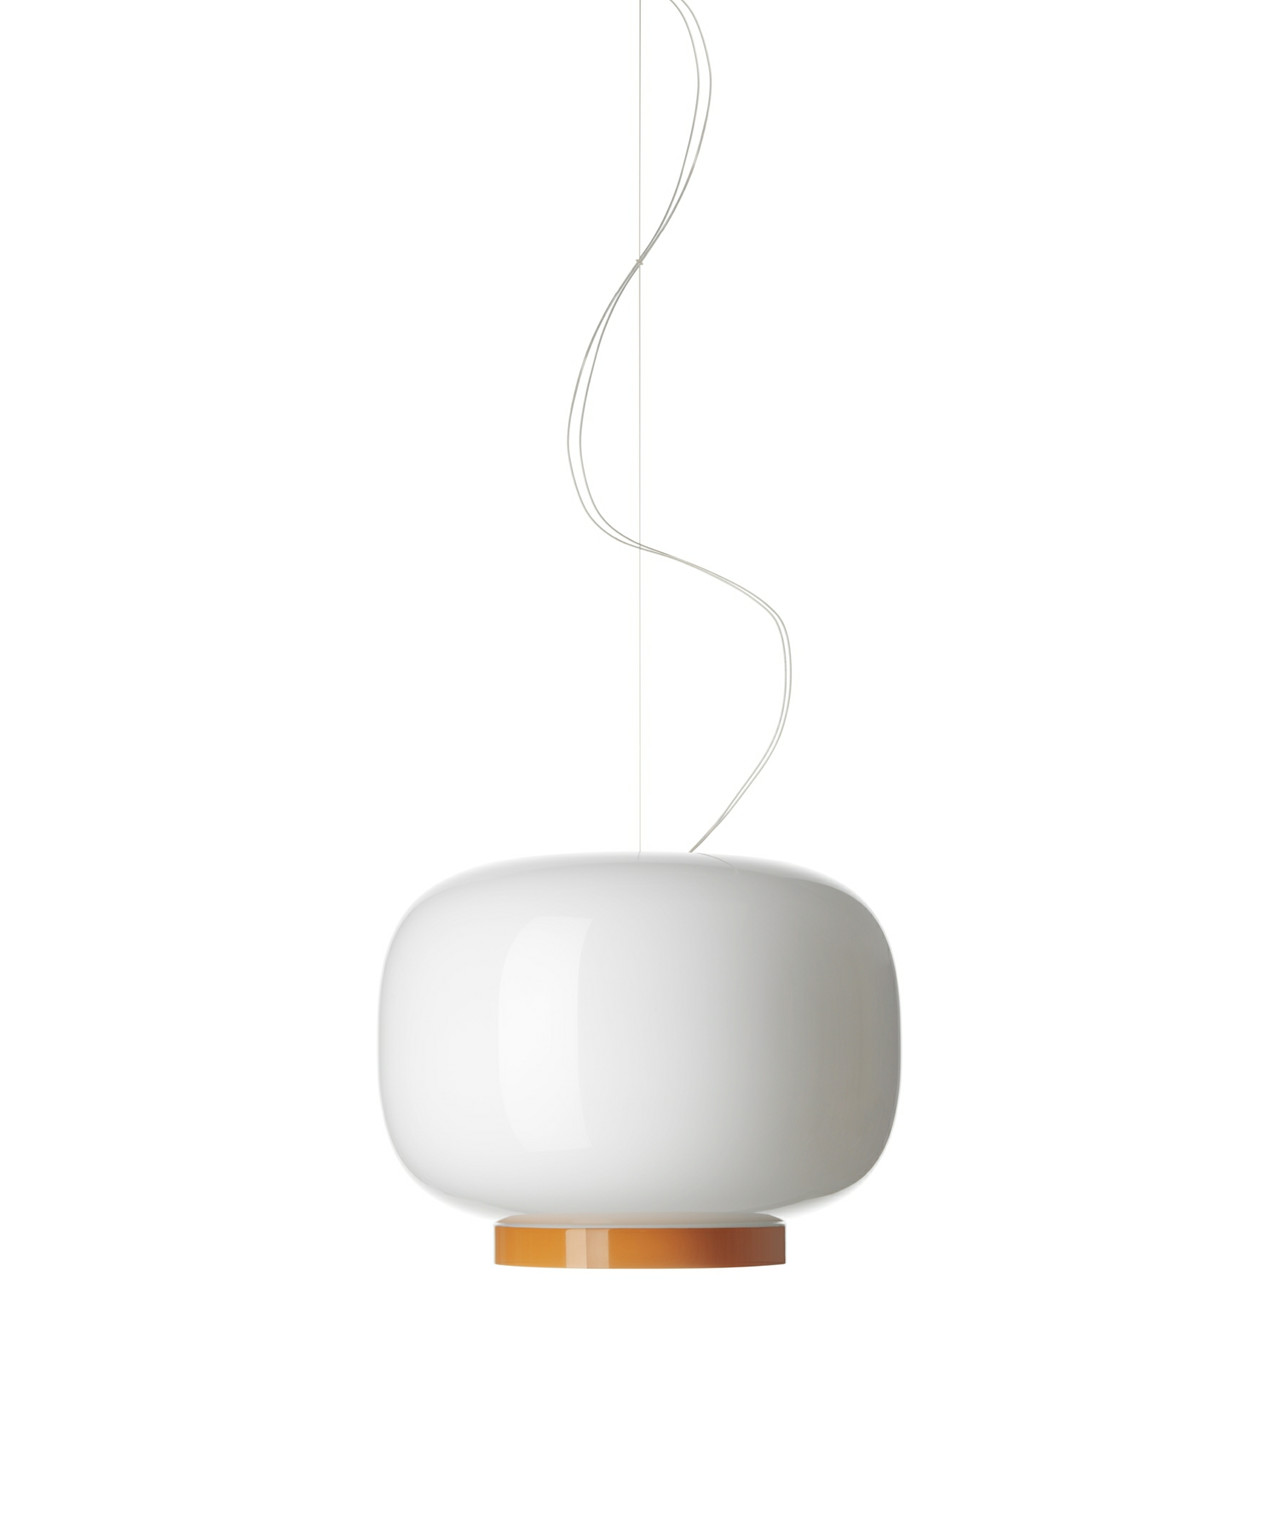 Image of   Chouchin 1 Reverse Pendel Hvid/Orange - Foscarini